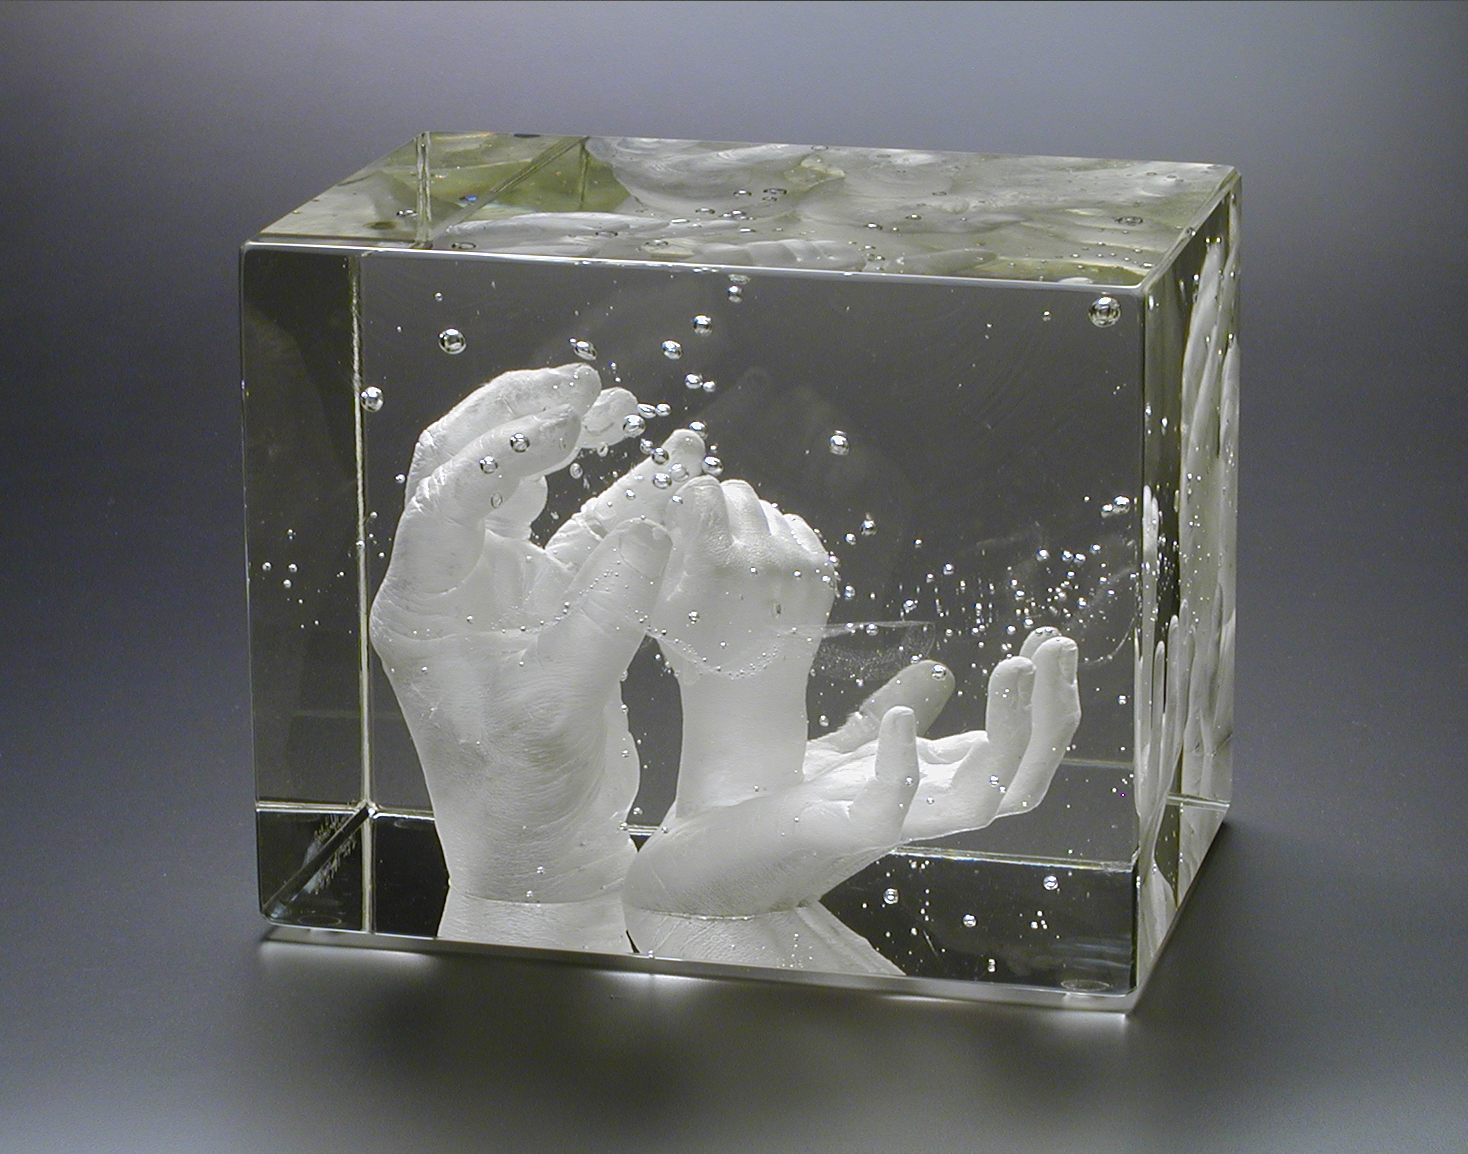 Clear glass block containing three generations of hands.